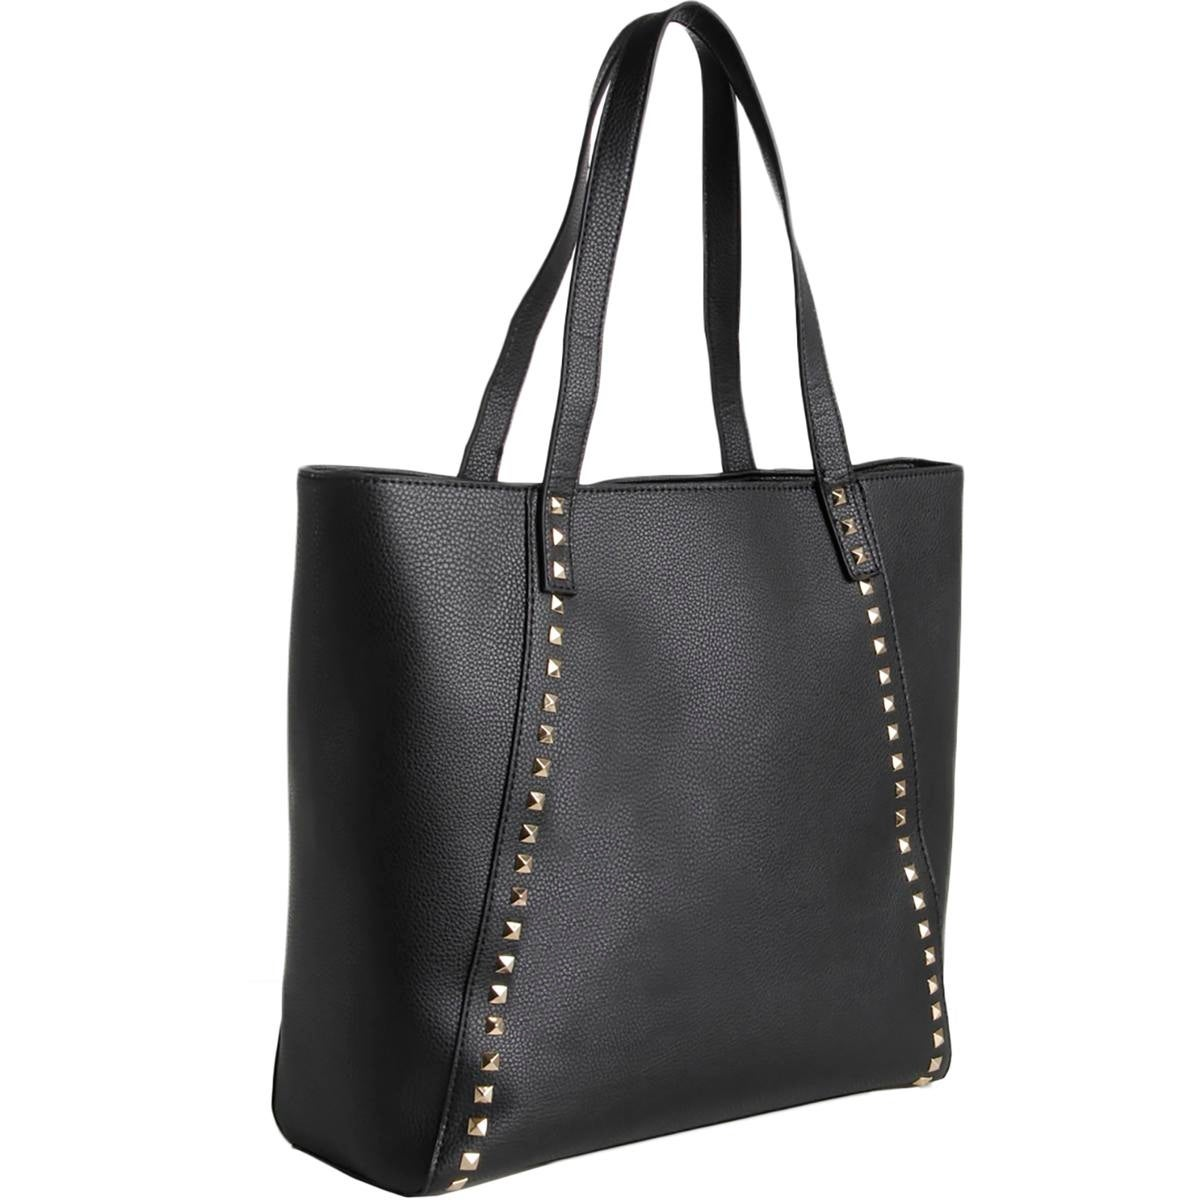 e0c2c8f9ce4c Shop BCBG Paris Womens Tote Handbag Faux Leather Studded - Large - Free  Shipping On Orders Over  45 - Overstock - 17008520